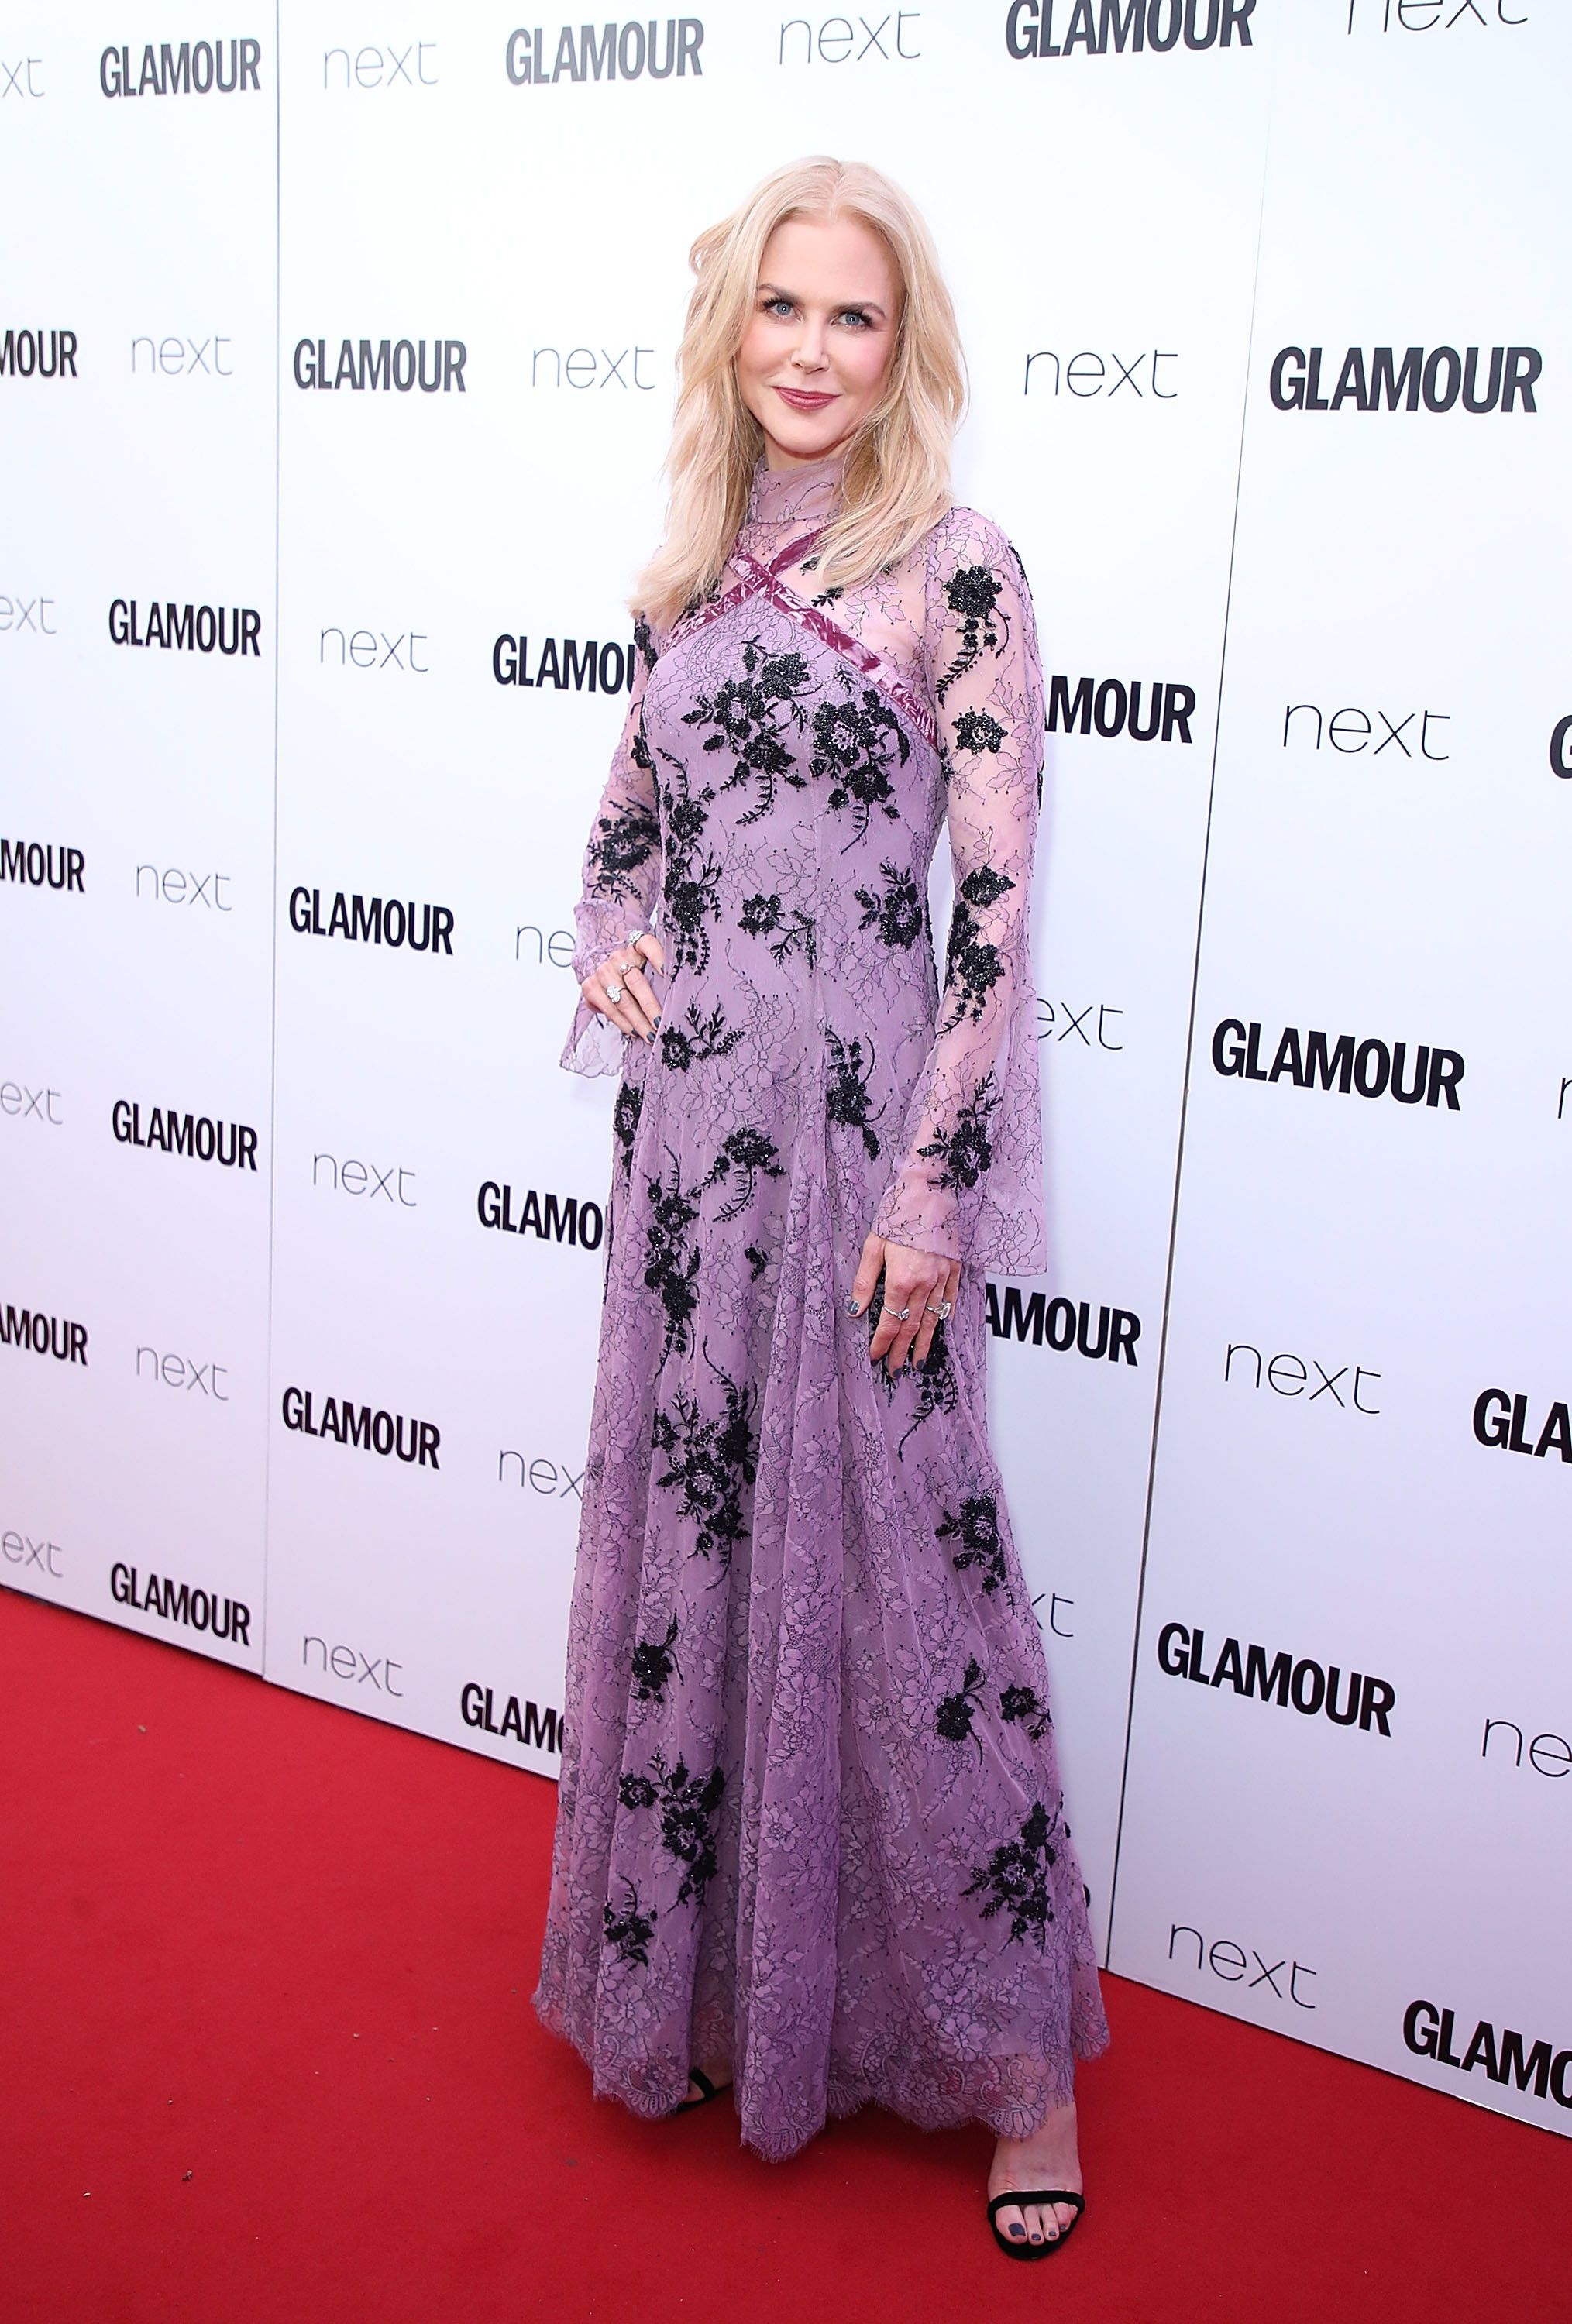 All The Best Red Carpet Looks From The Glamour